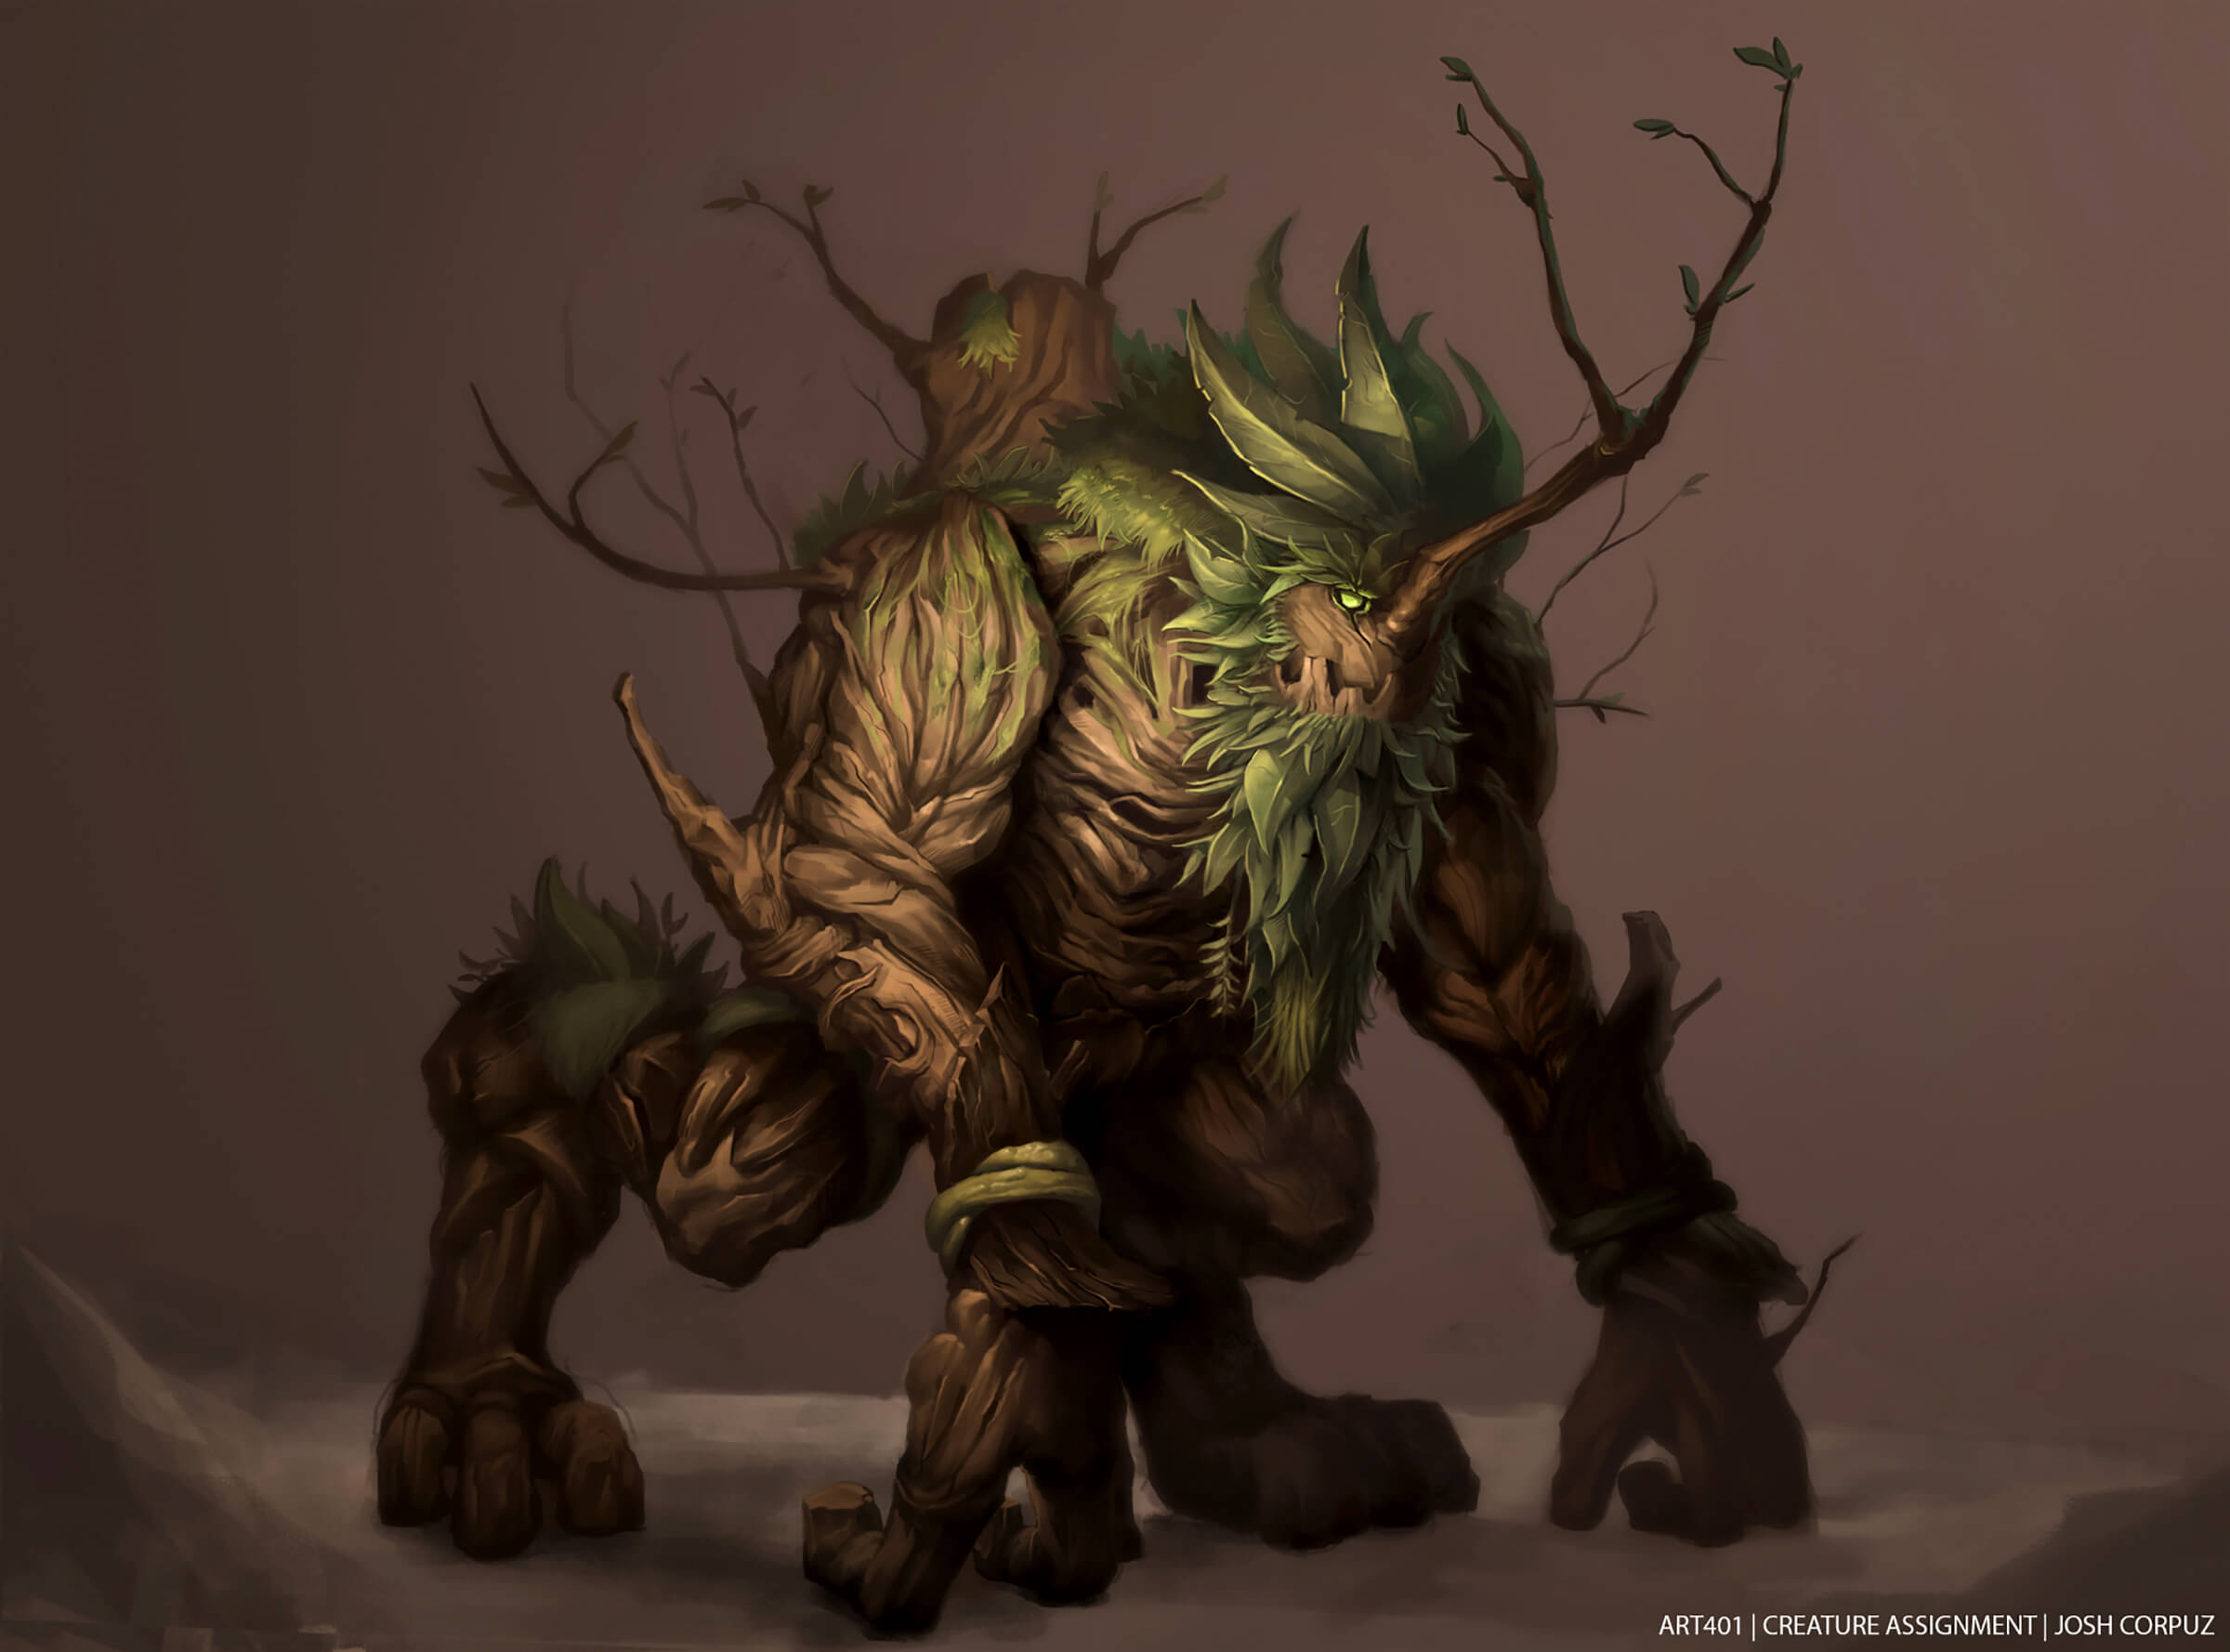 A quadrupedal beast made of wood, with a mane of leaves and grass, and a branch jutting out of its face like a horn.